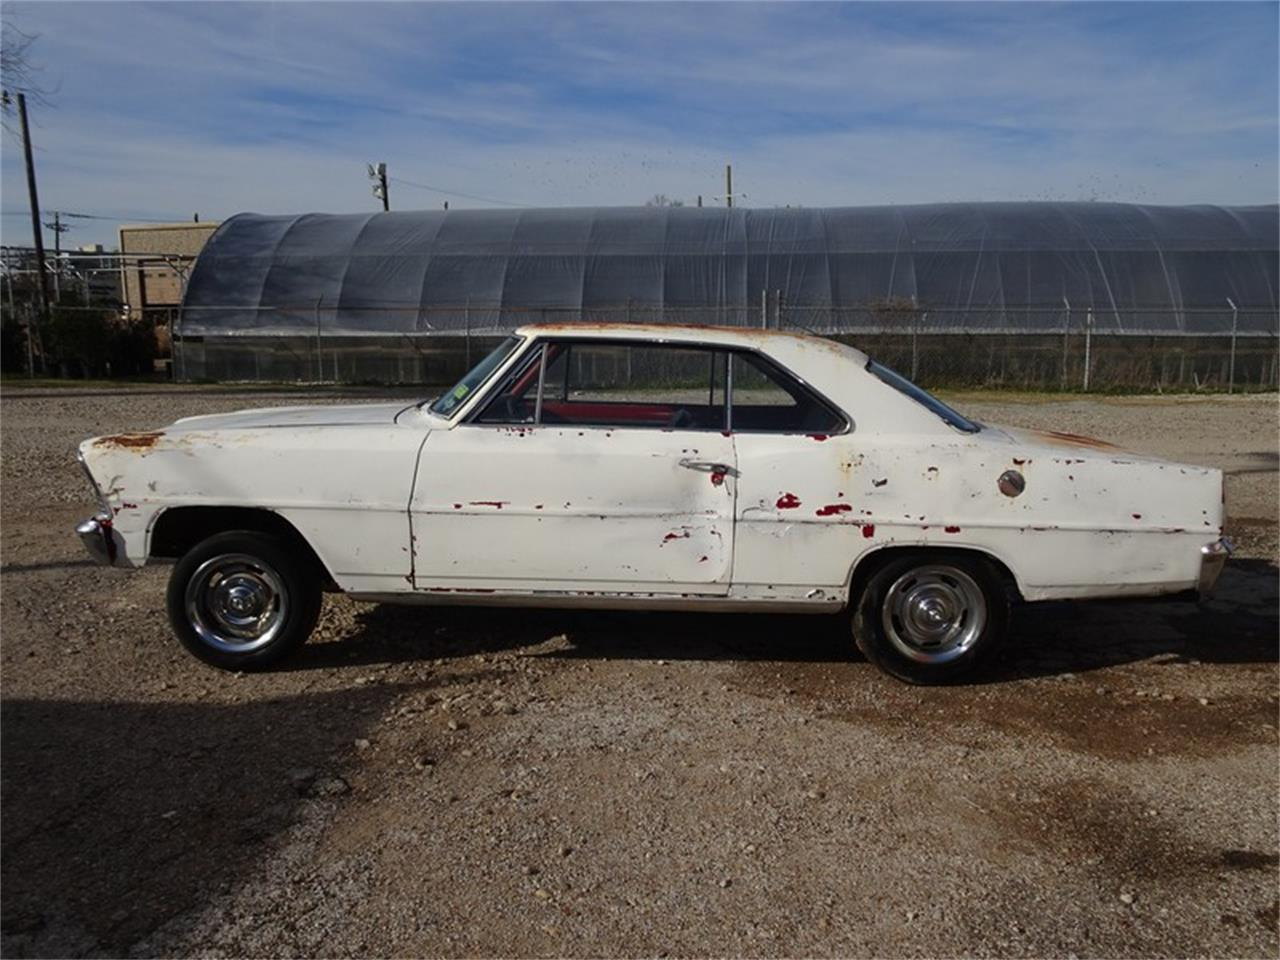 Large Picture of Classic '67 Chevrolet Nova located in DALLAS Texas - $7,500.00 - Q4CY